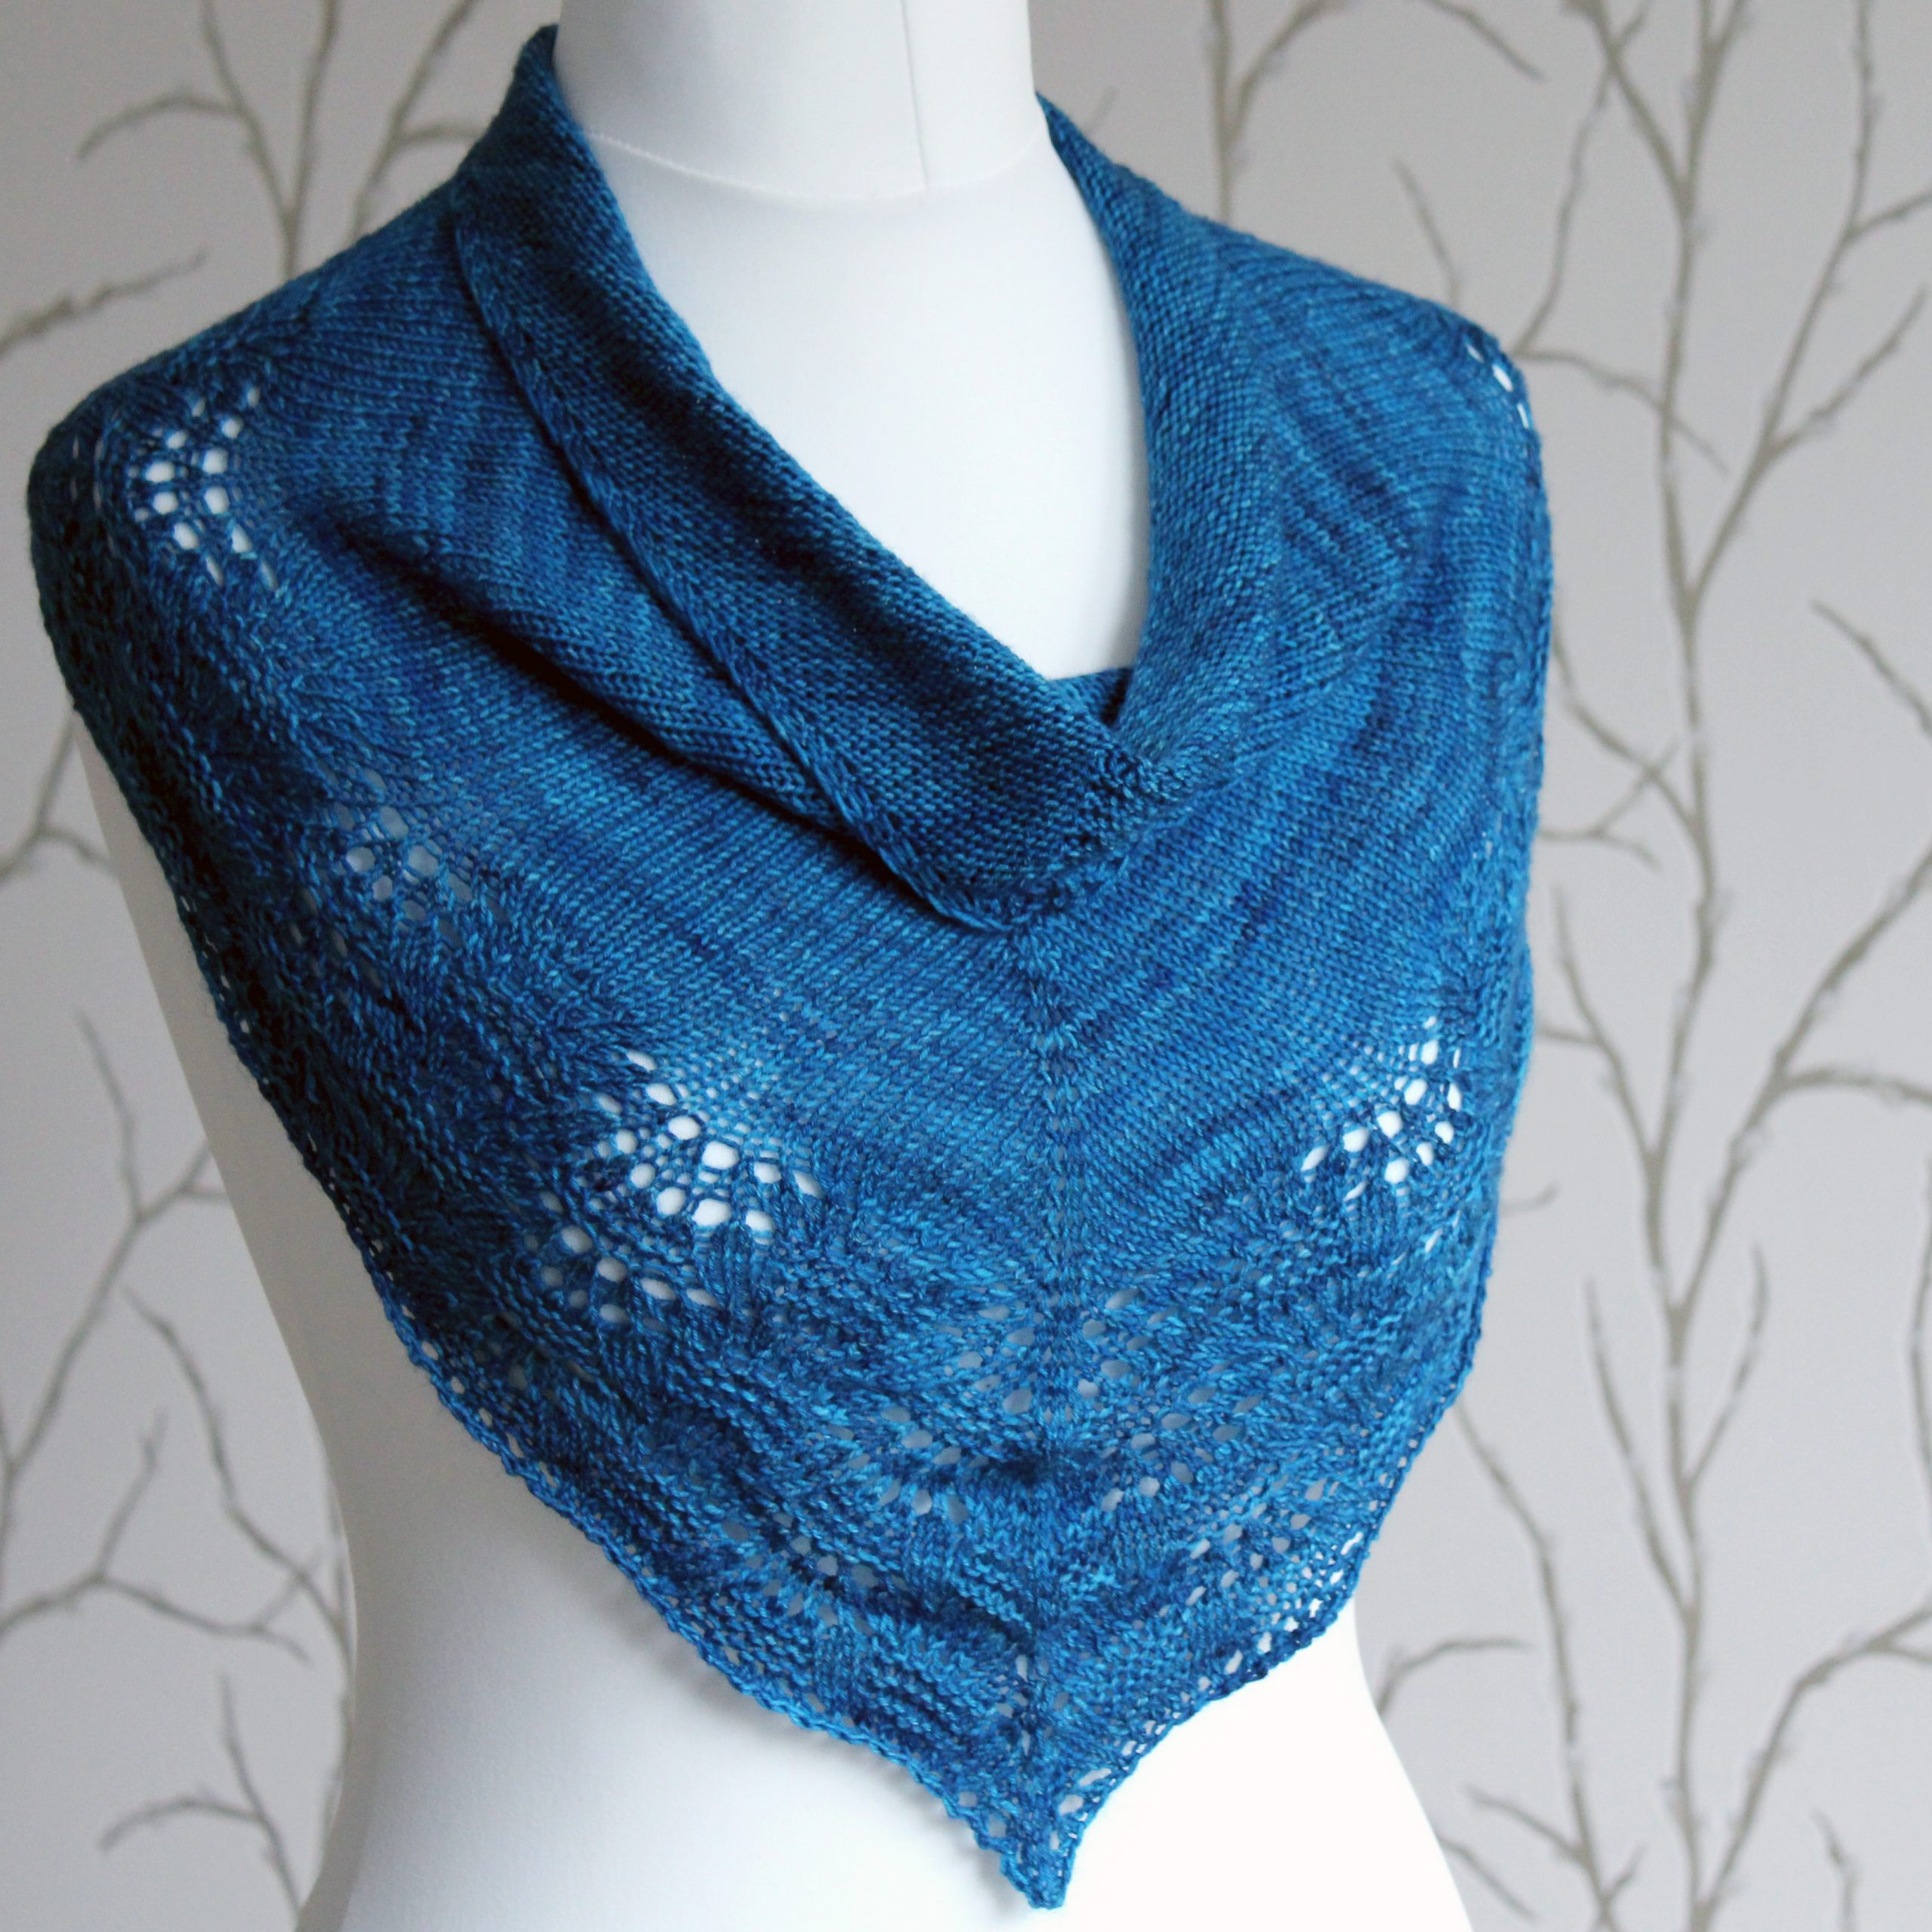 A blue triangular cowlette with a stocking stitch body and rippling lace and textured border